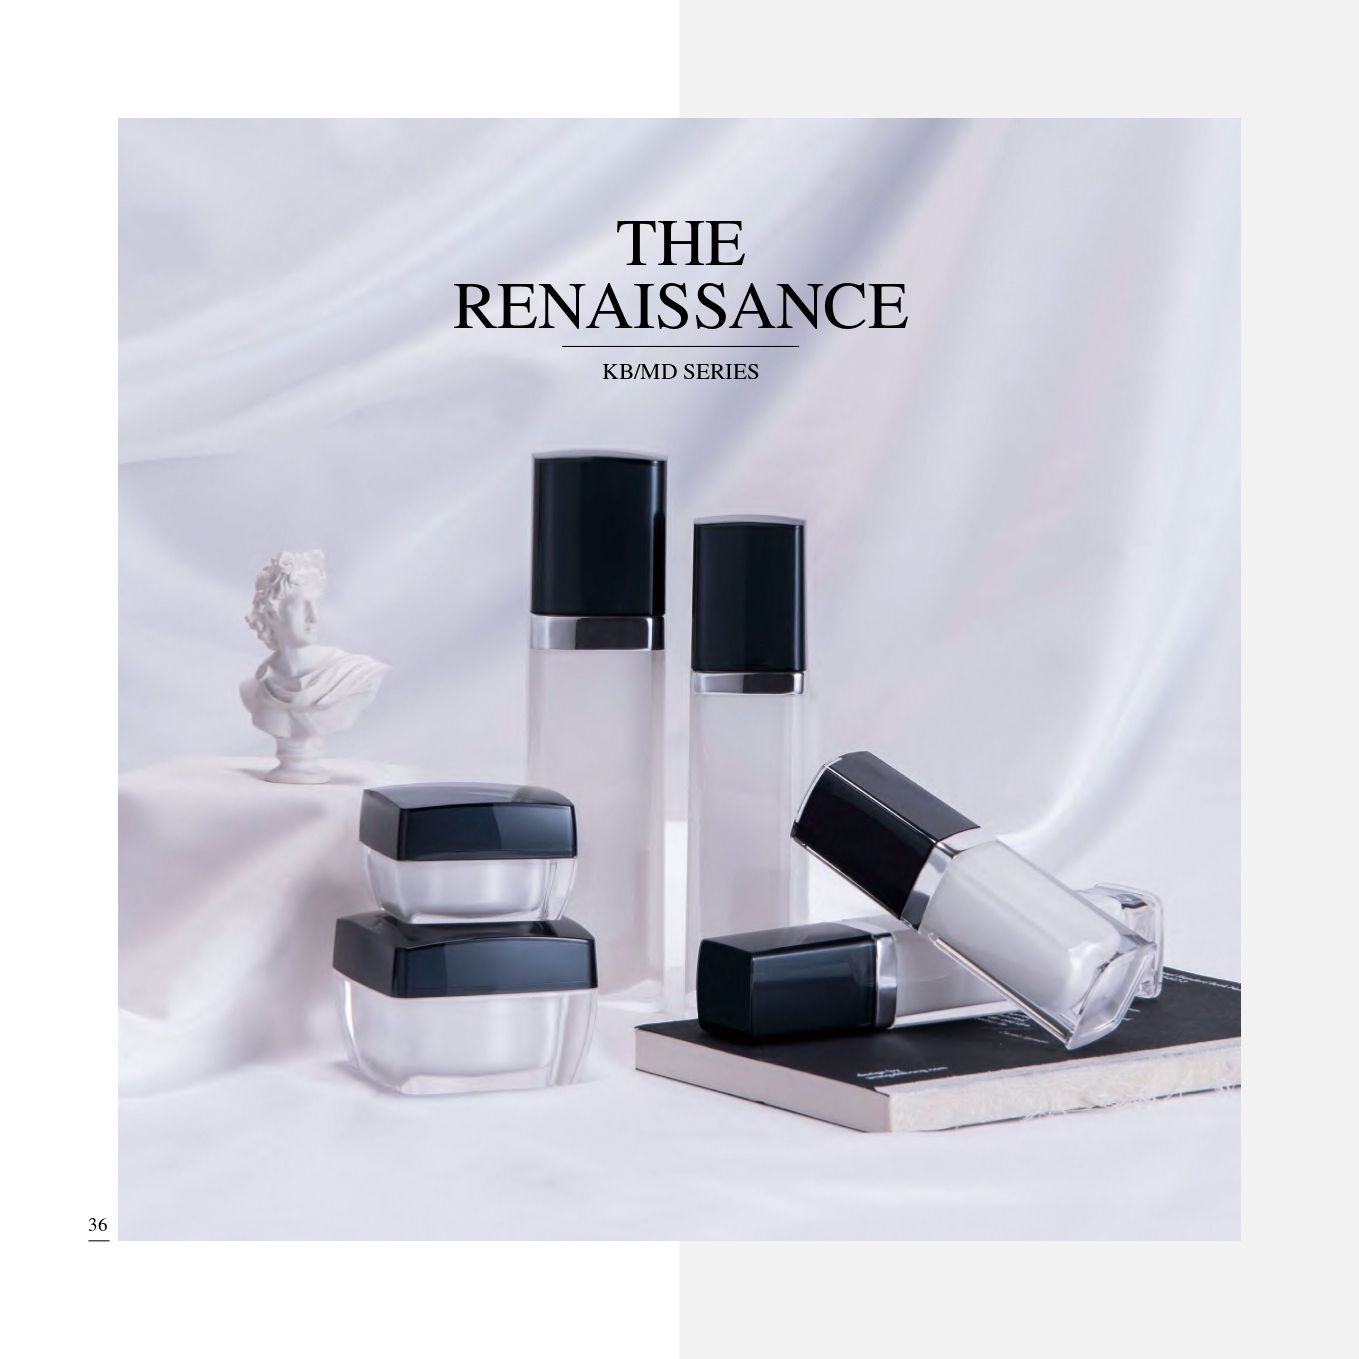 Square Shape Acrylic Luxury Cosmetic & Skincare Packaging - The Renaissance serie - Cosmetic Packaging Collection - The Renaissance